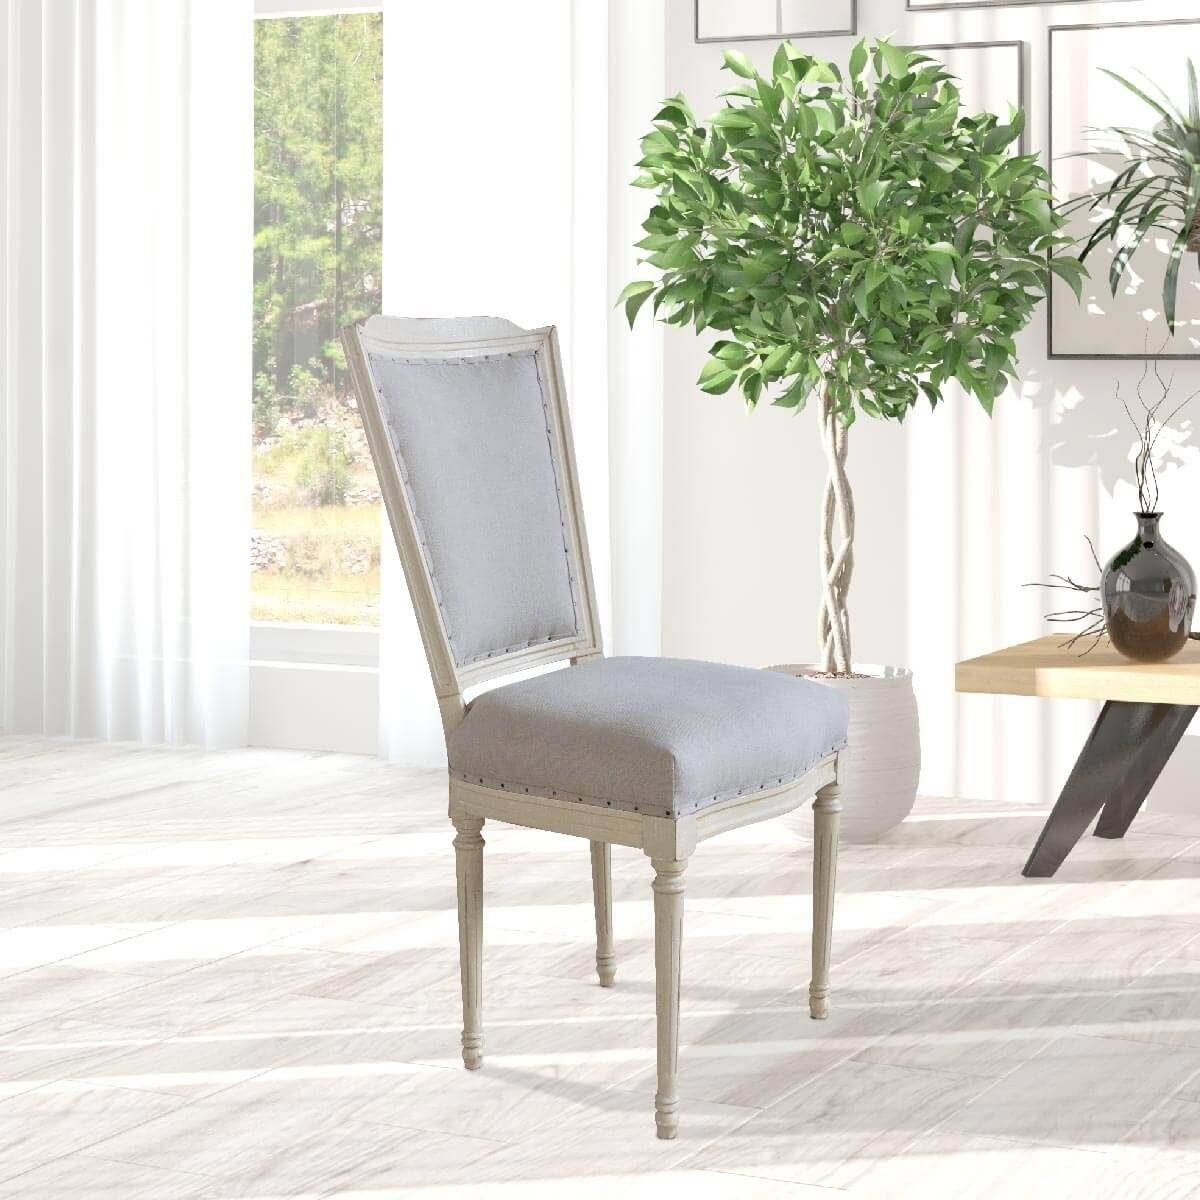 Linnette Dining Chair Cozy Home Dubai